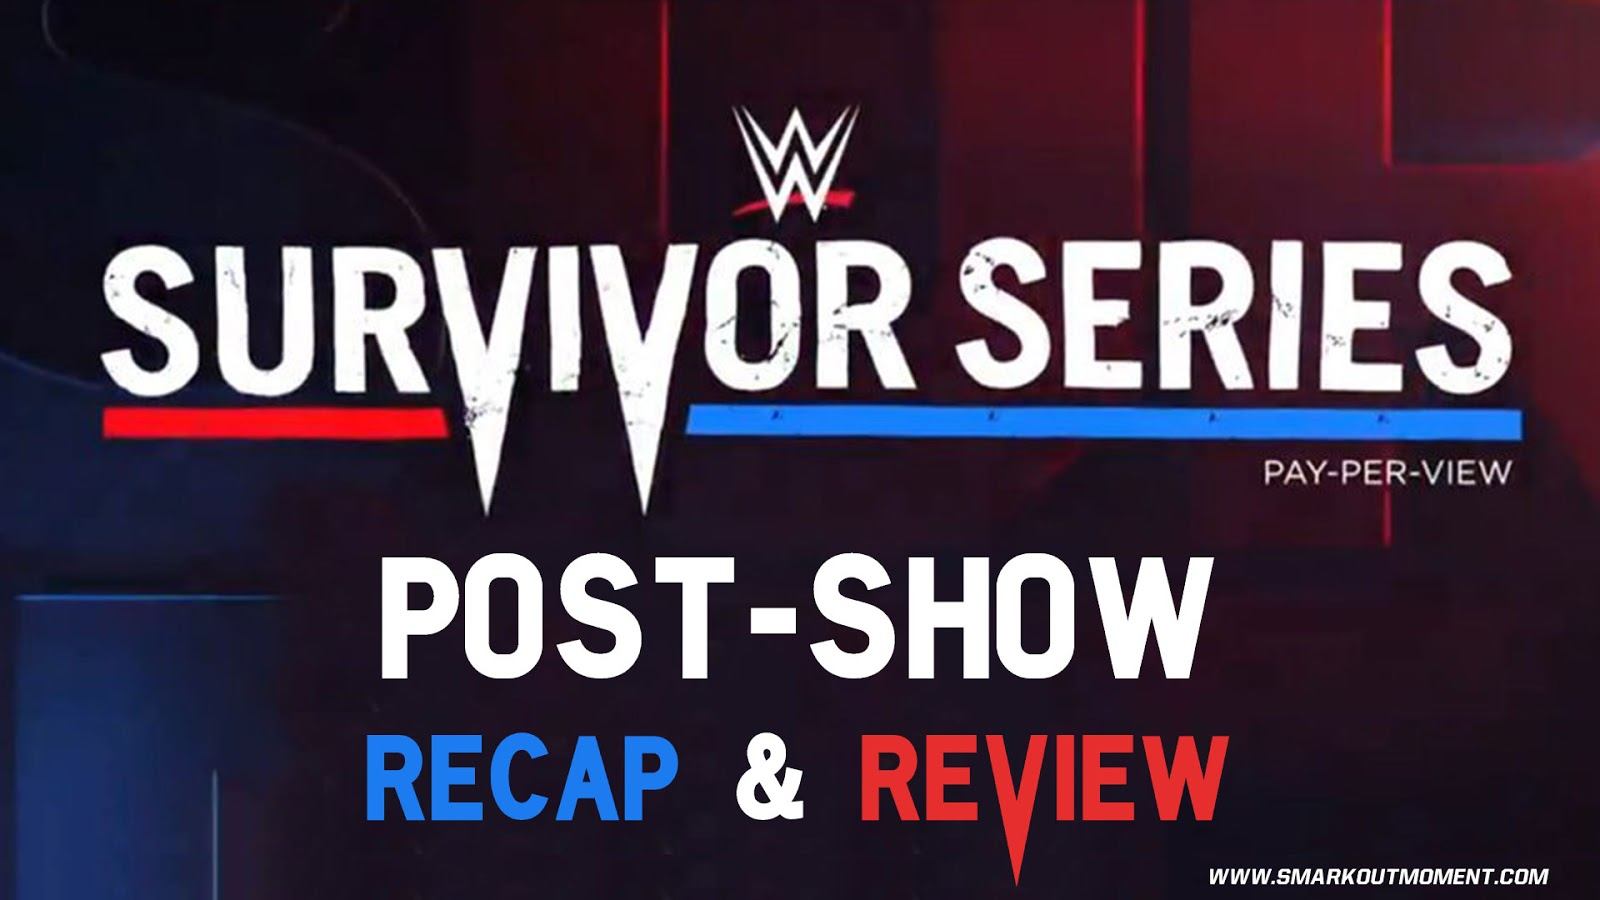 WWE SURVIVOR SERIES 2017 Recap and Review Podcast